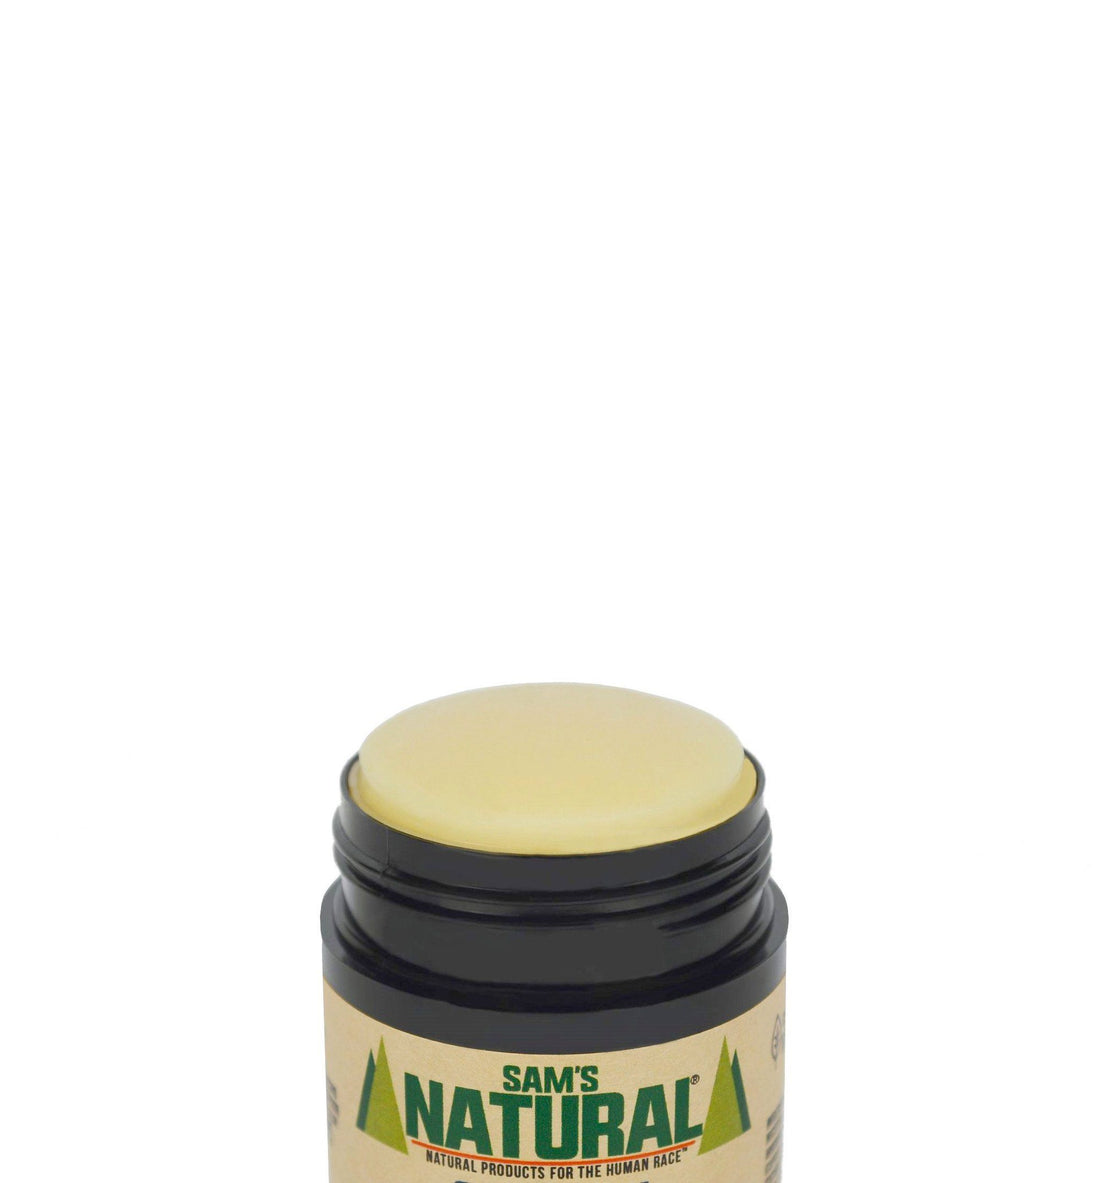 Sam's Natural Original Deodorant - Grooming - Iron and Resin